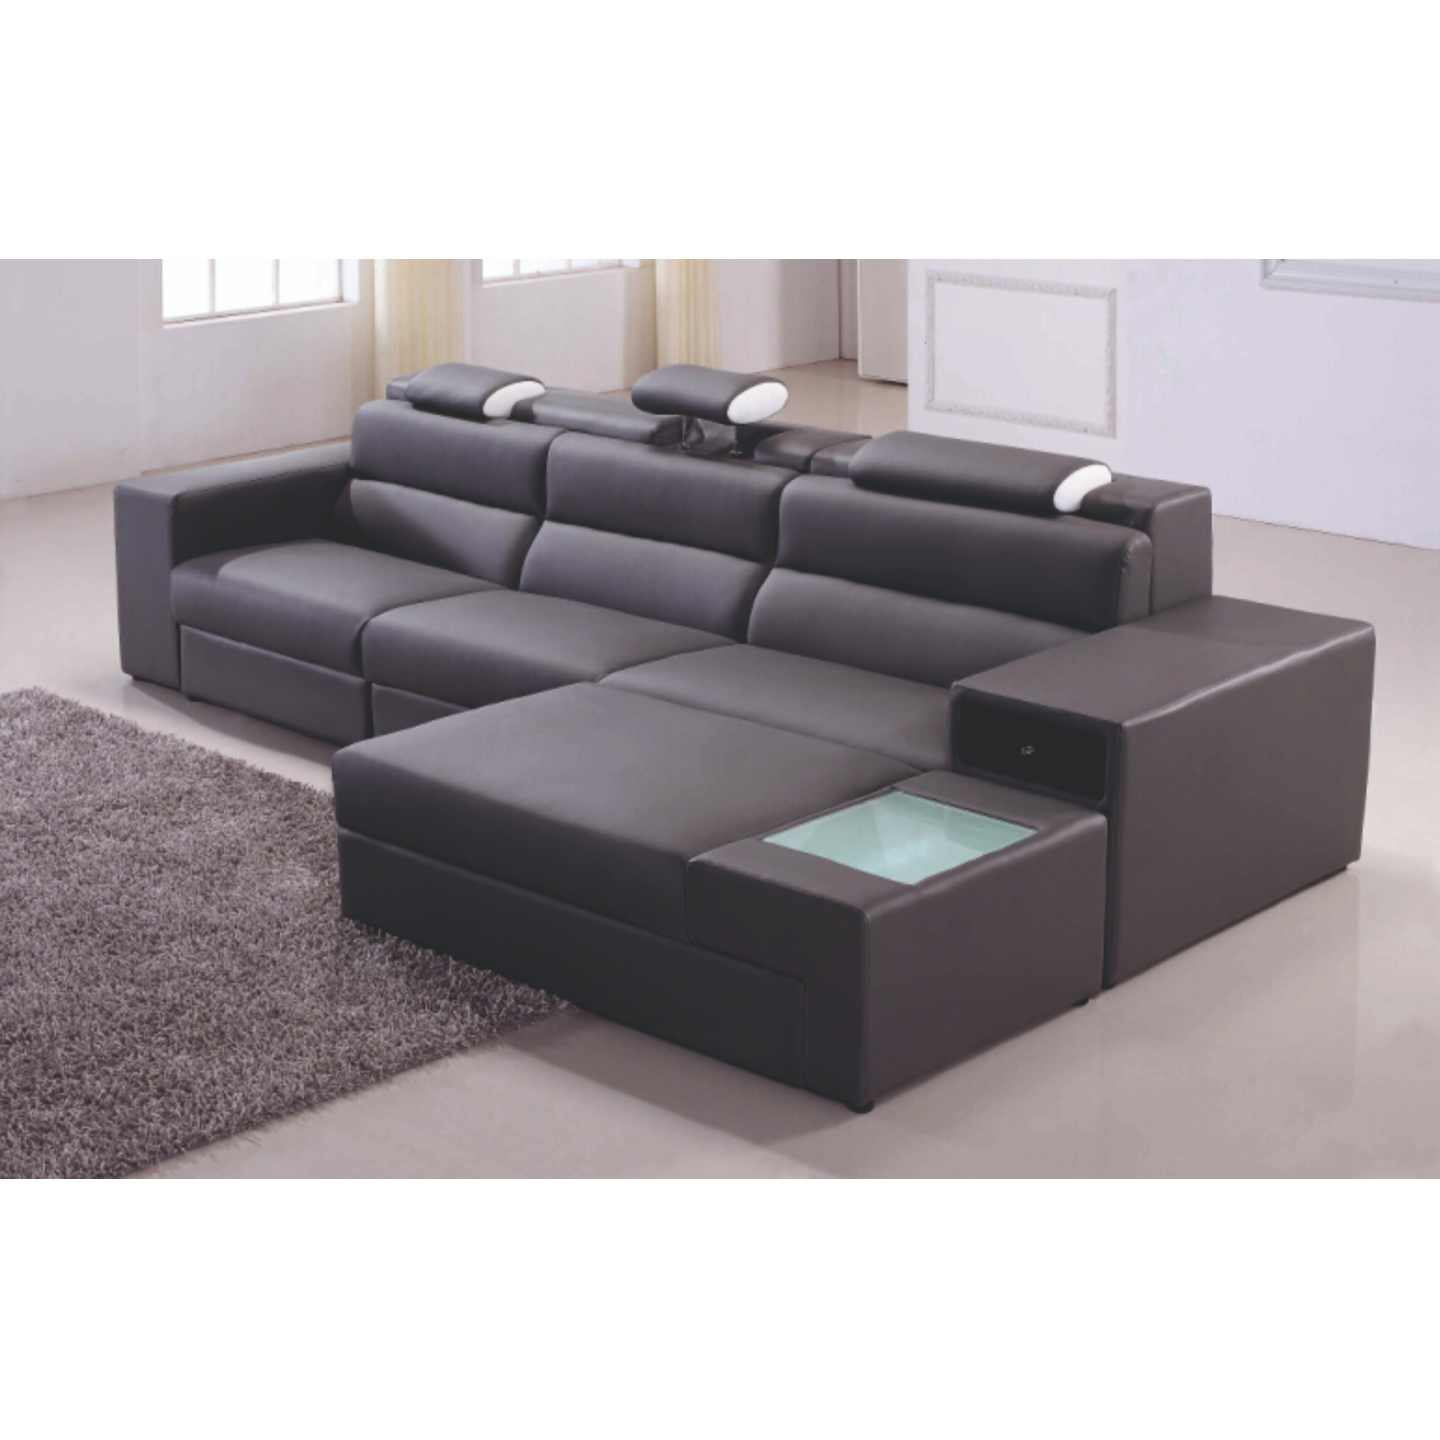 Orion Left Side Lounger Sofa (FC47)